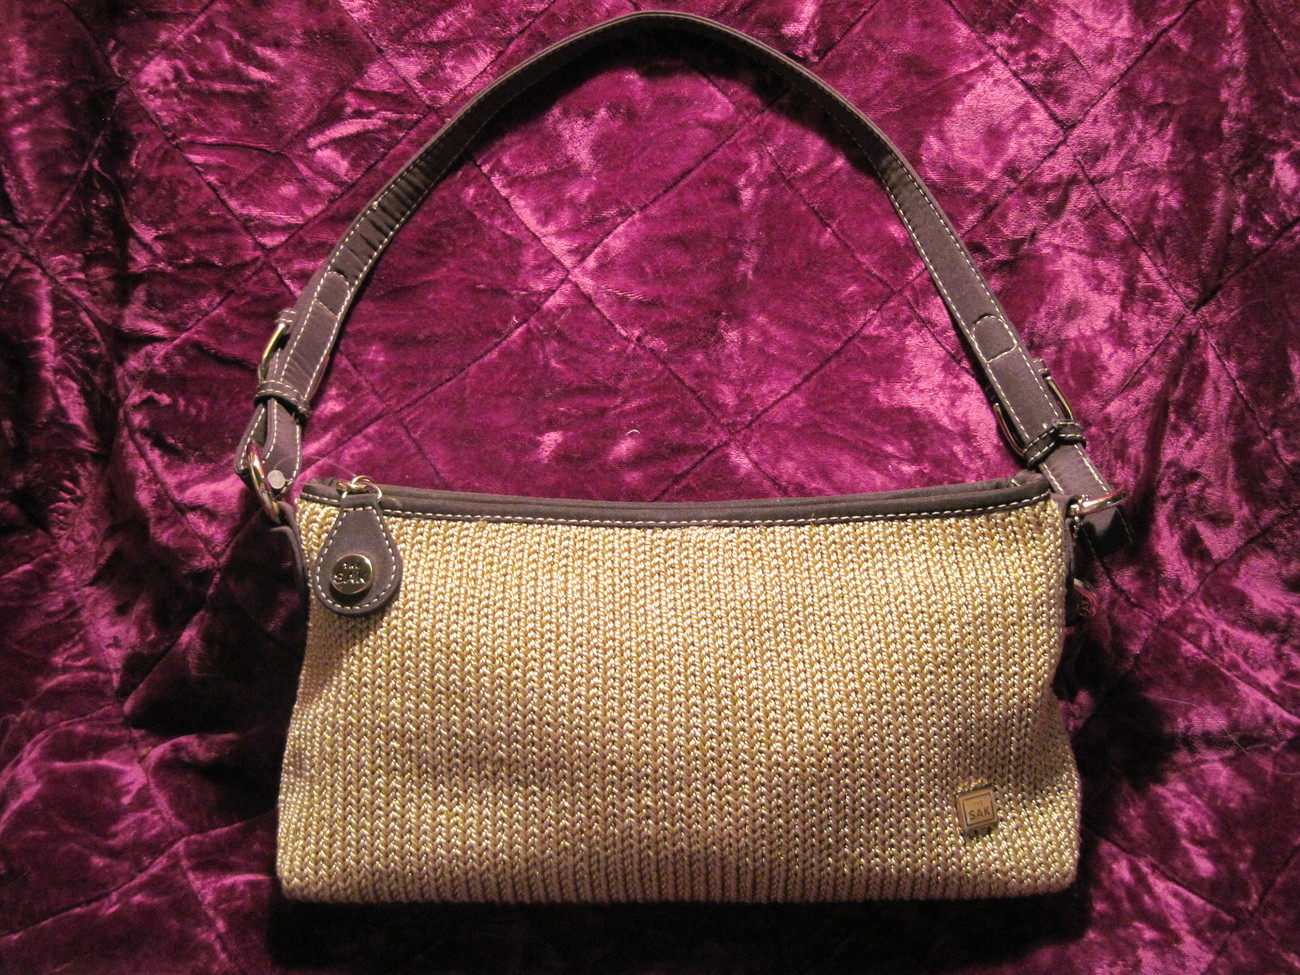 Designer Leather handbags from The Sak The Sak Artist Circle Bags